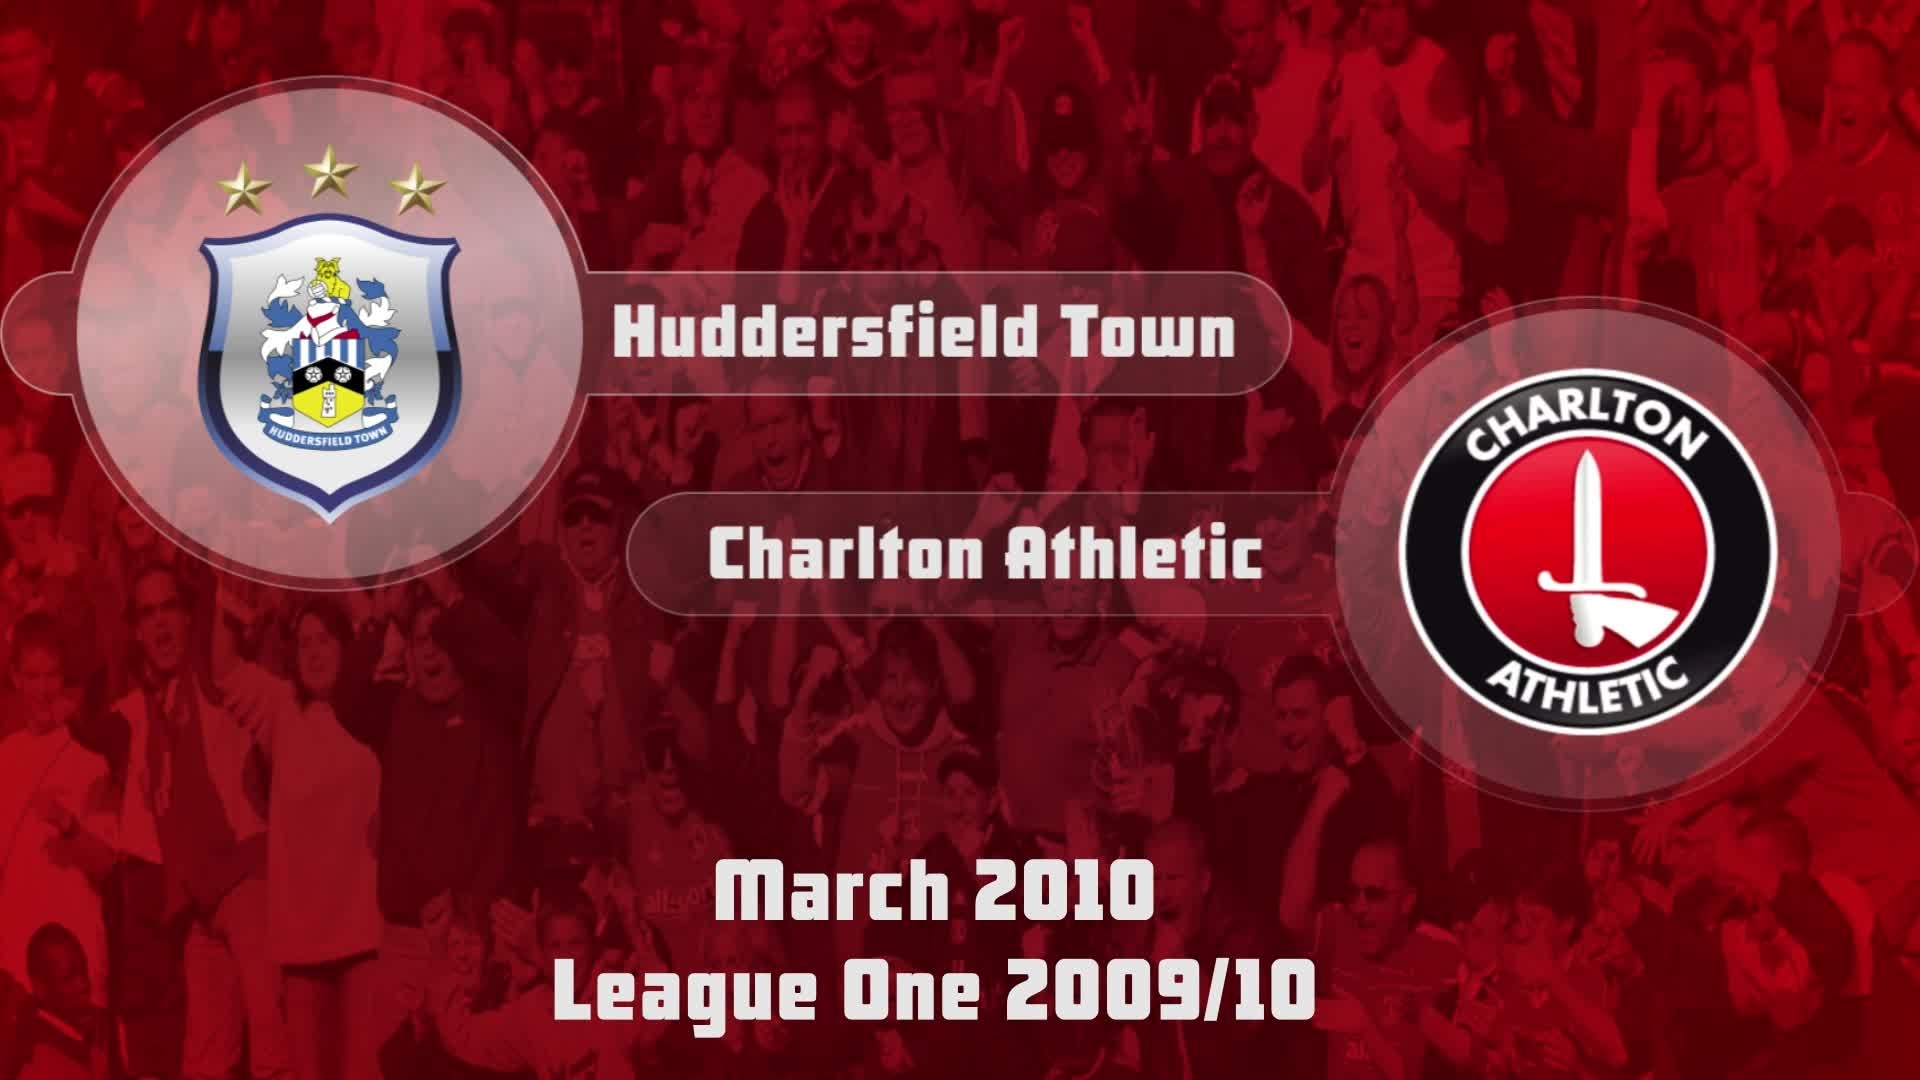 42 HIGHLIGHTS | Huddersfield 1 Charlton 1 (March 2010)